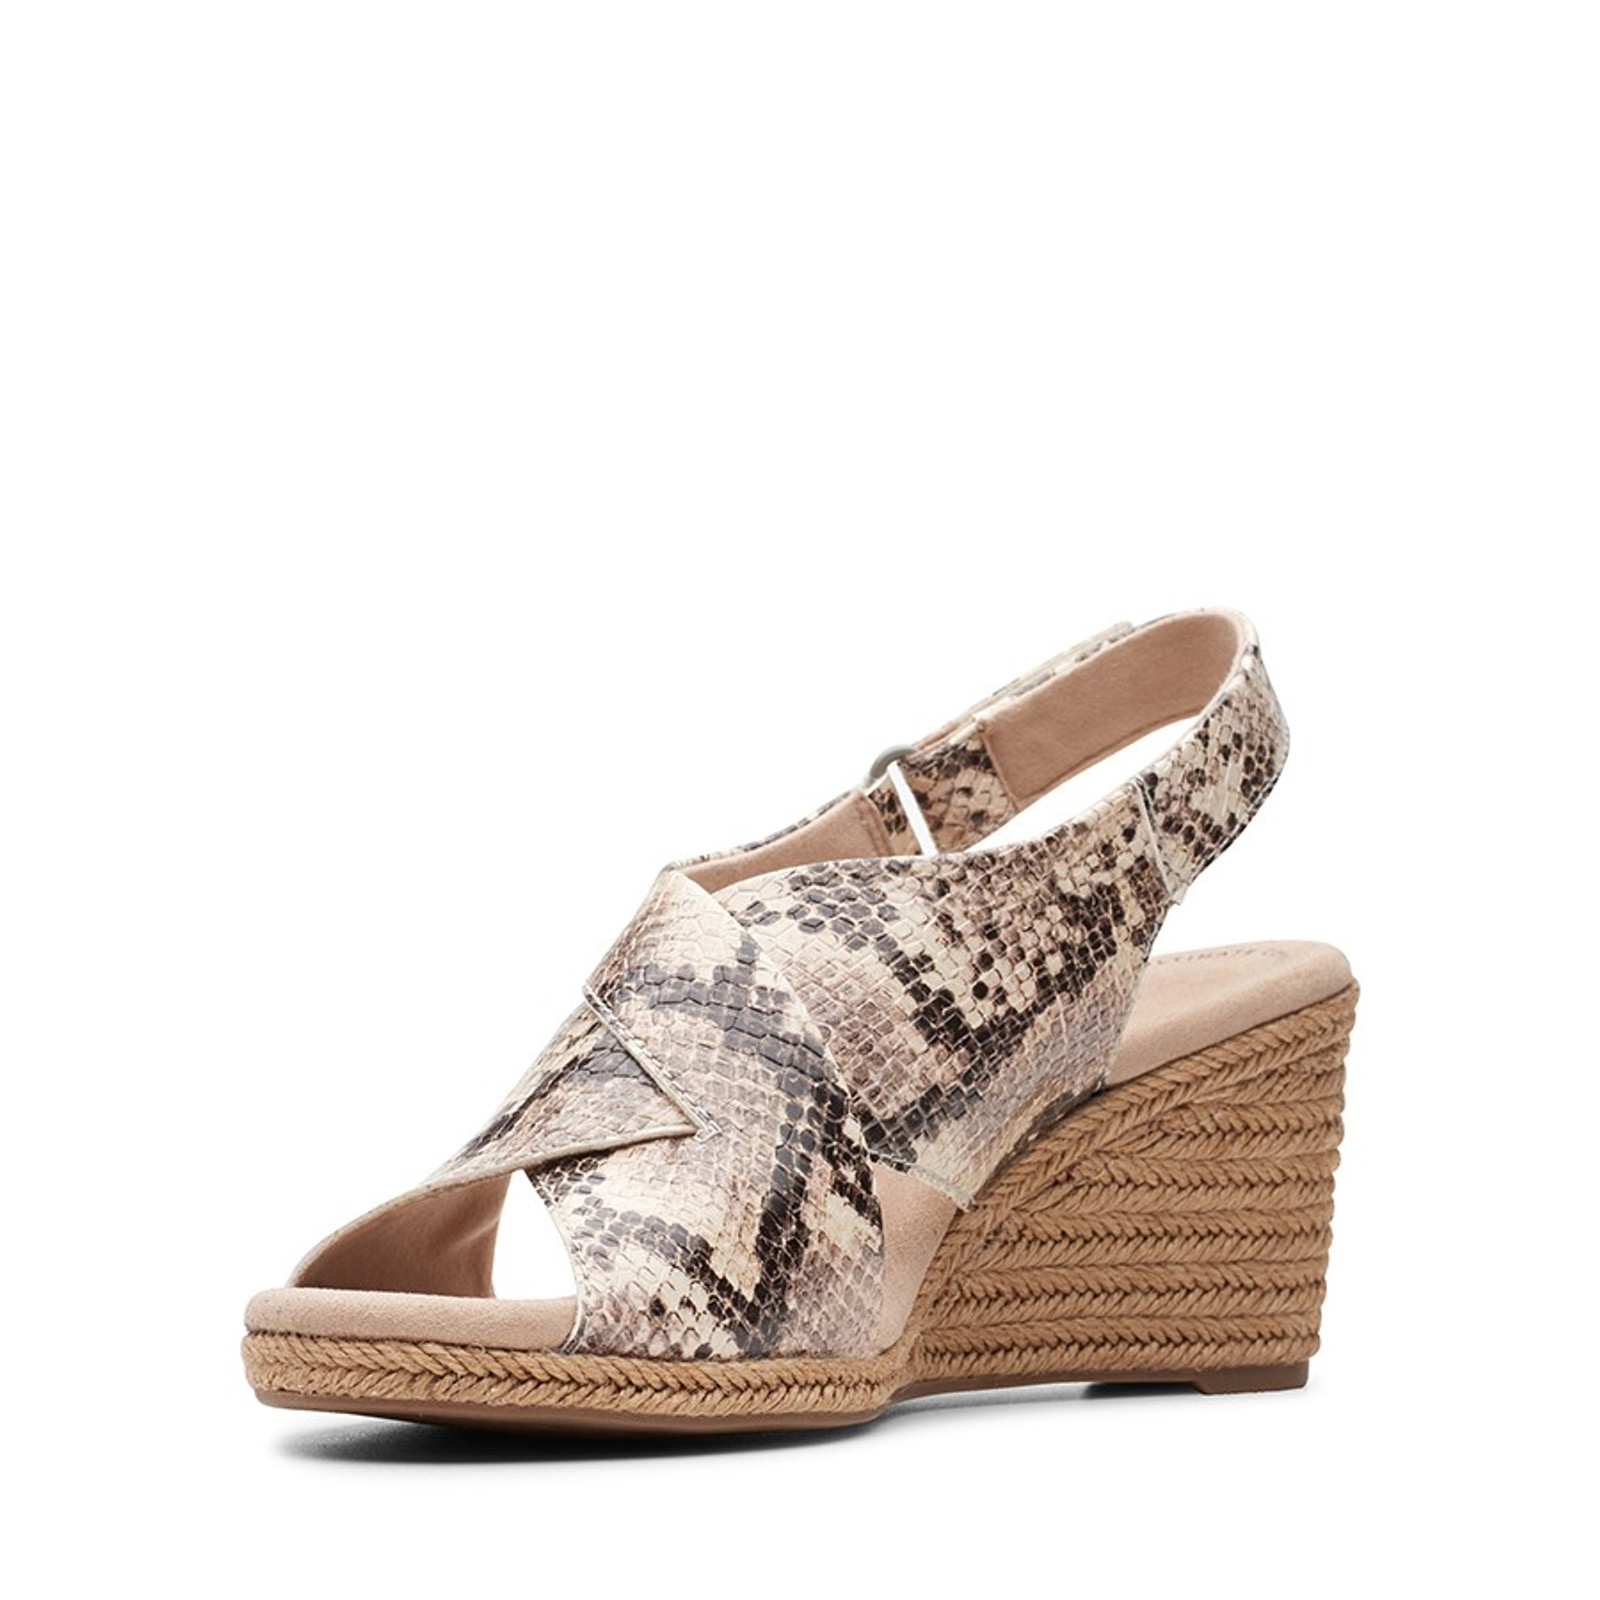 Clarks Womens LAFLEY ALAINE Taupe Snake